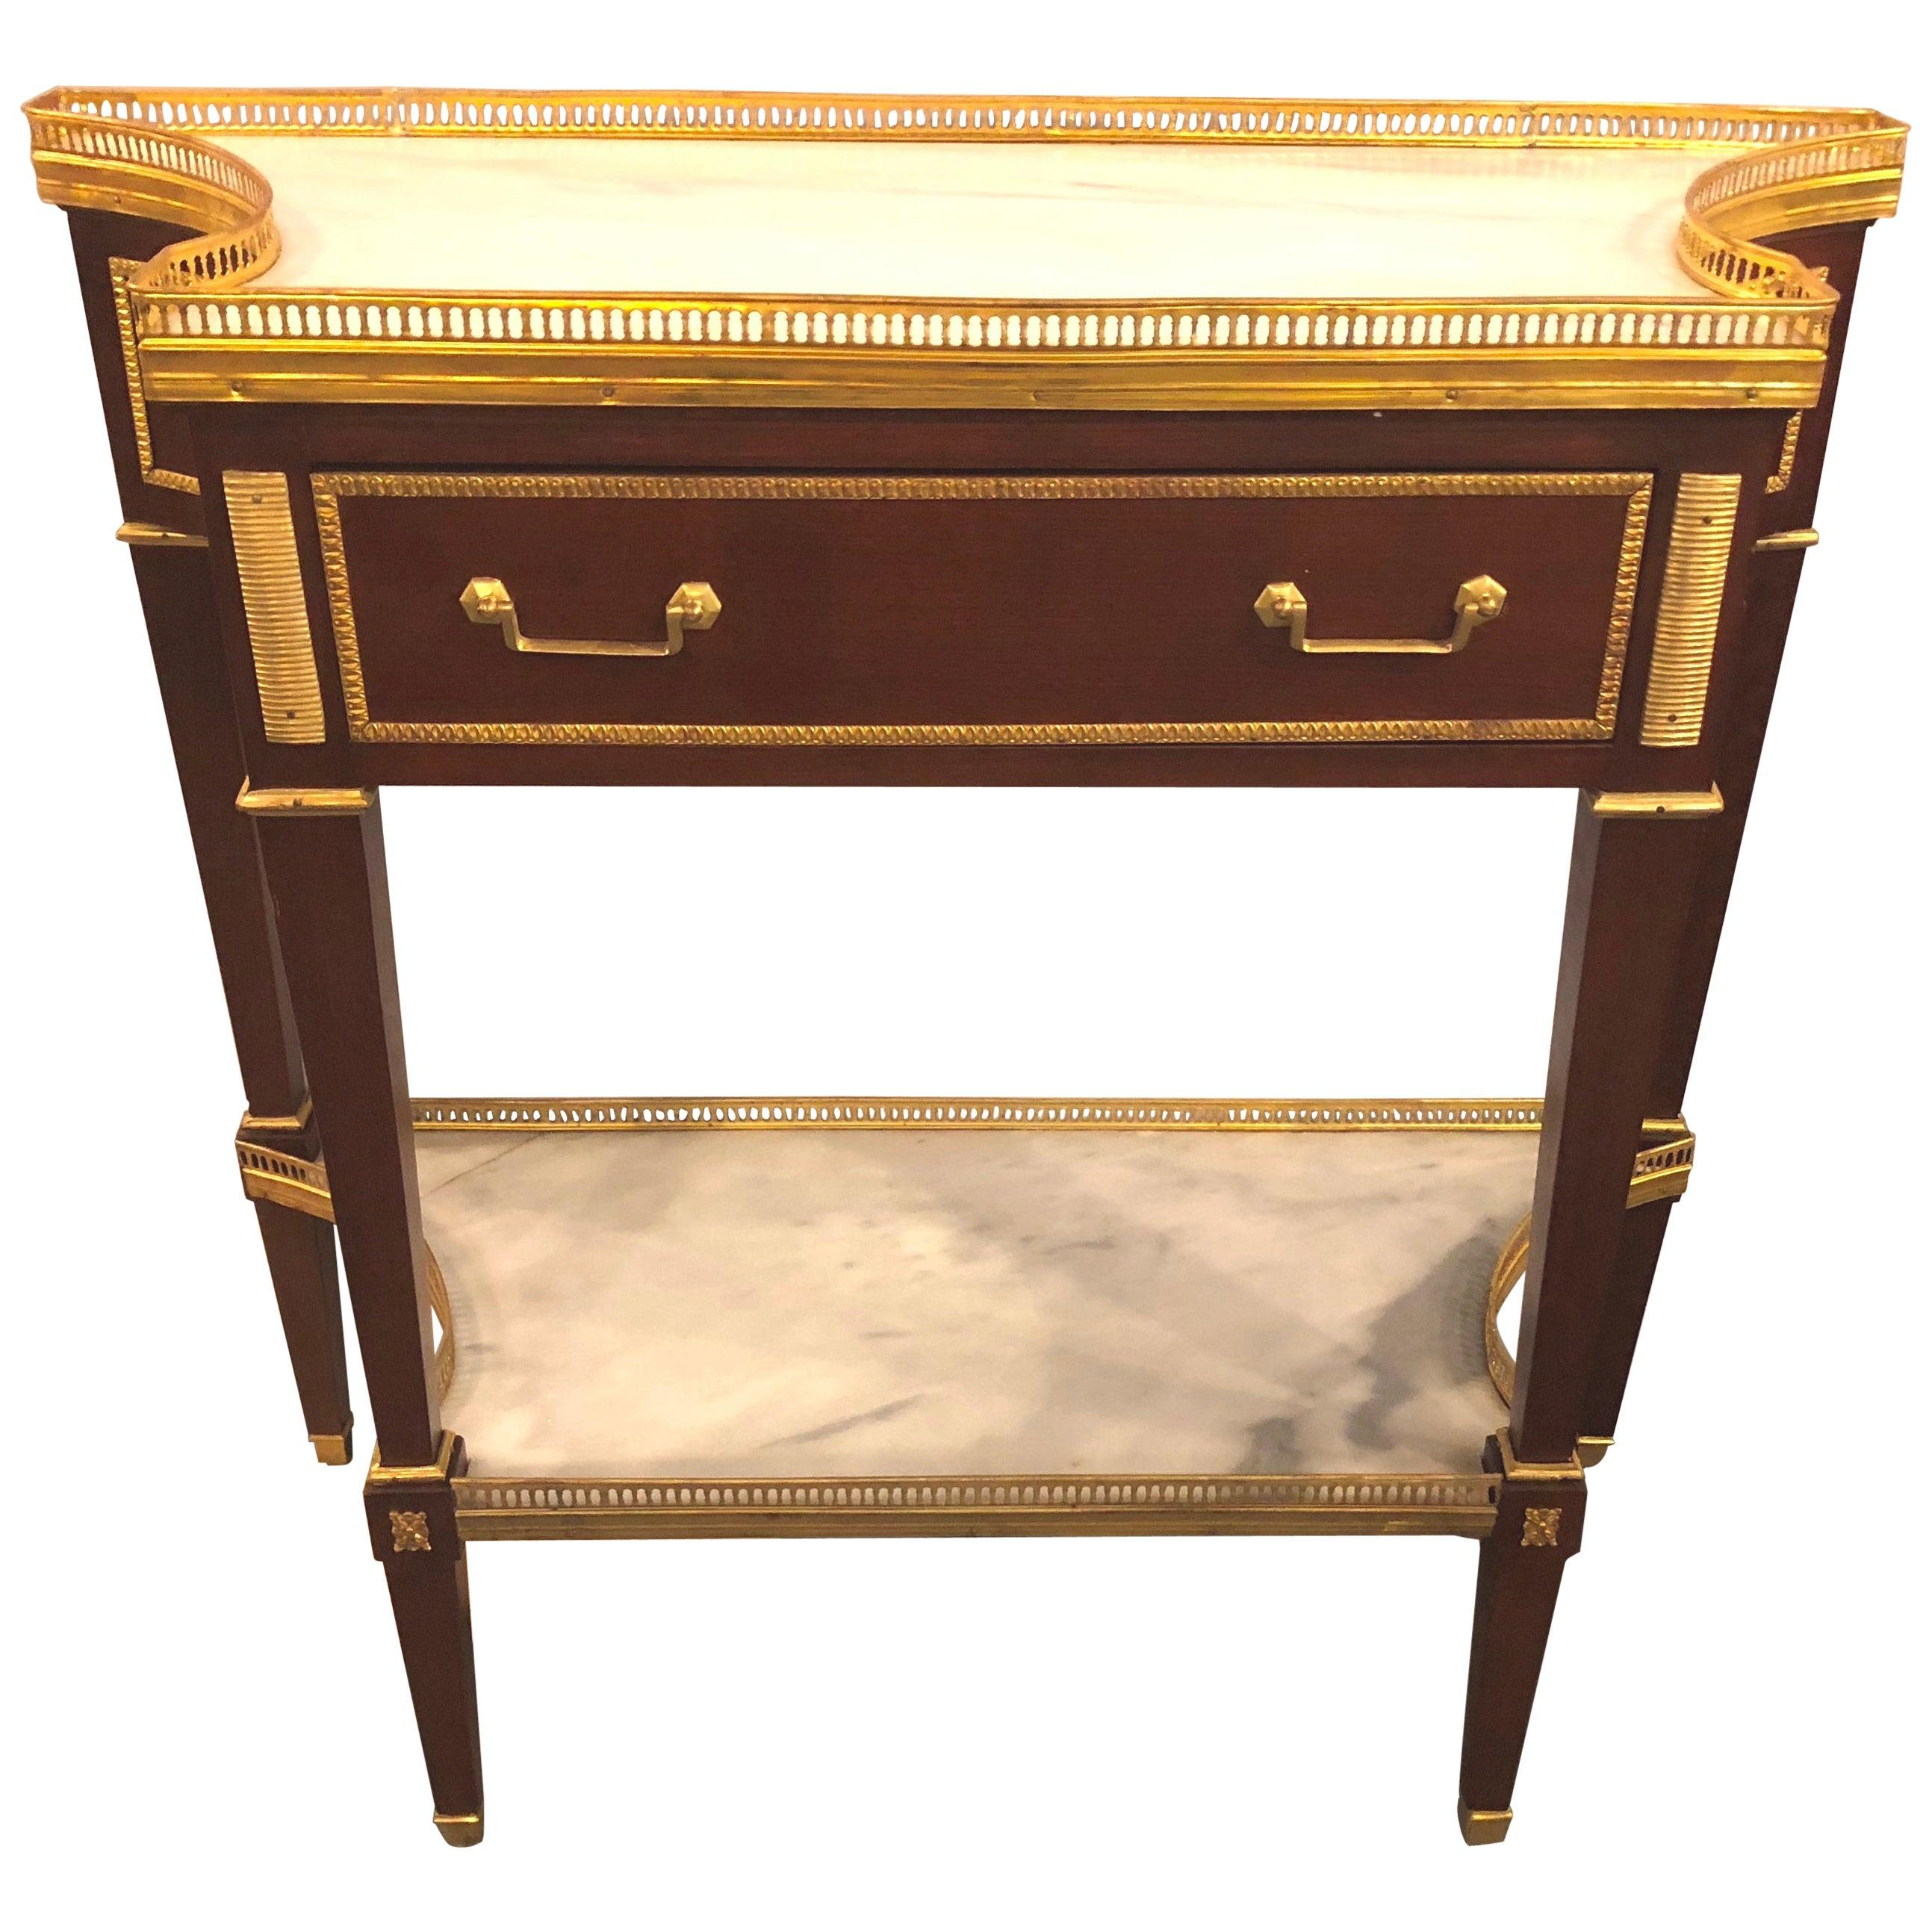 Russian Neoclassical Style Console/Server or Commode with Marble Top